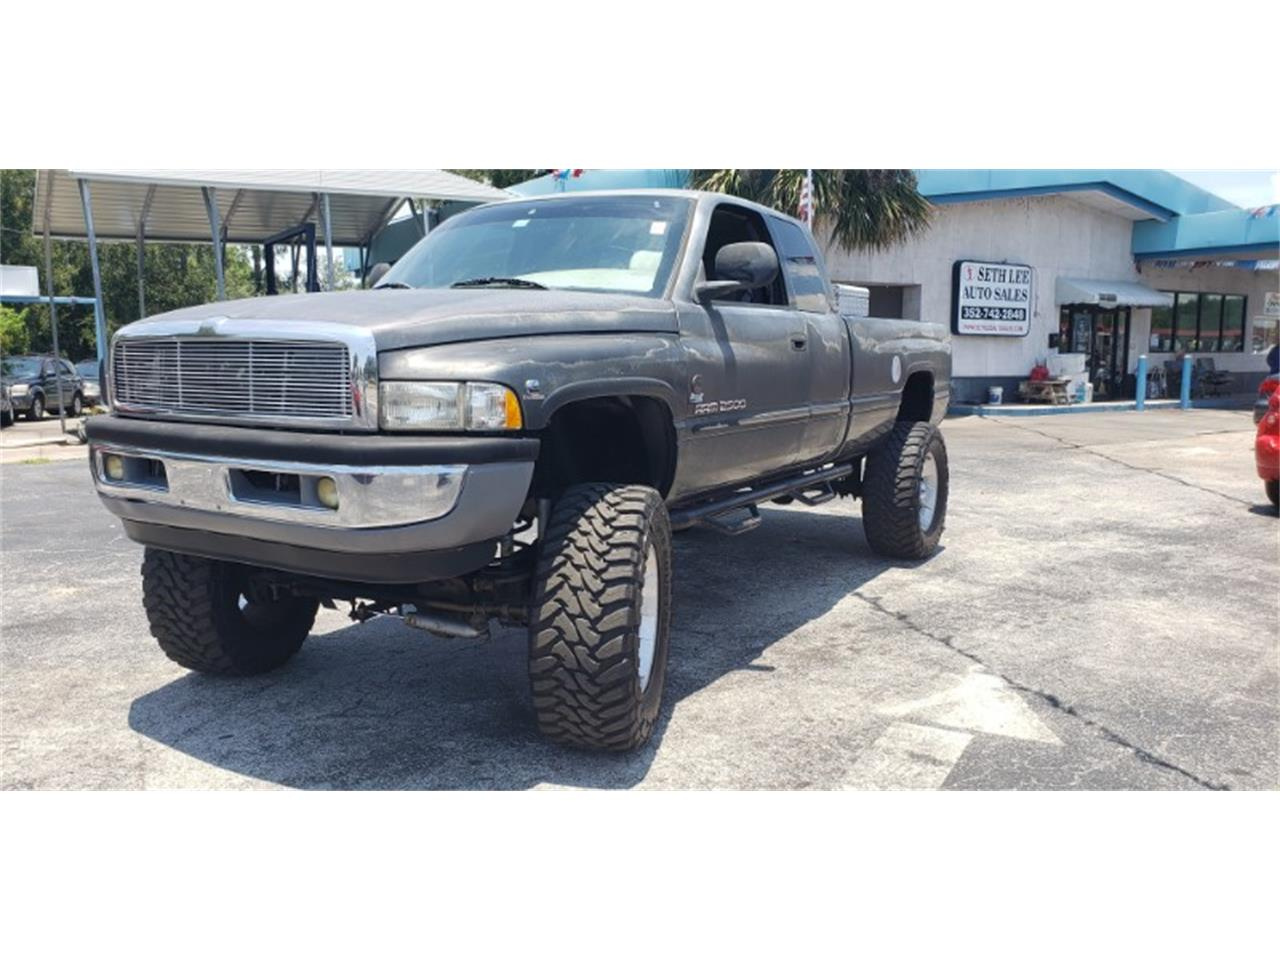 Large Picture of 2002 Dodge Ram 2500 located in Tavares Florida - $12,995.00 - QGWY